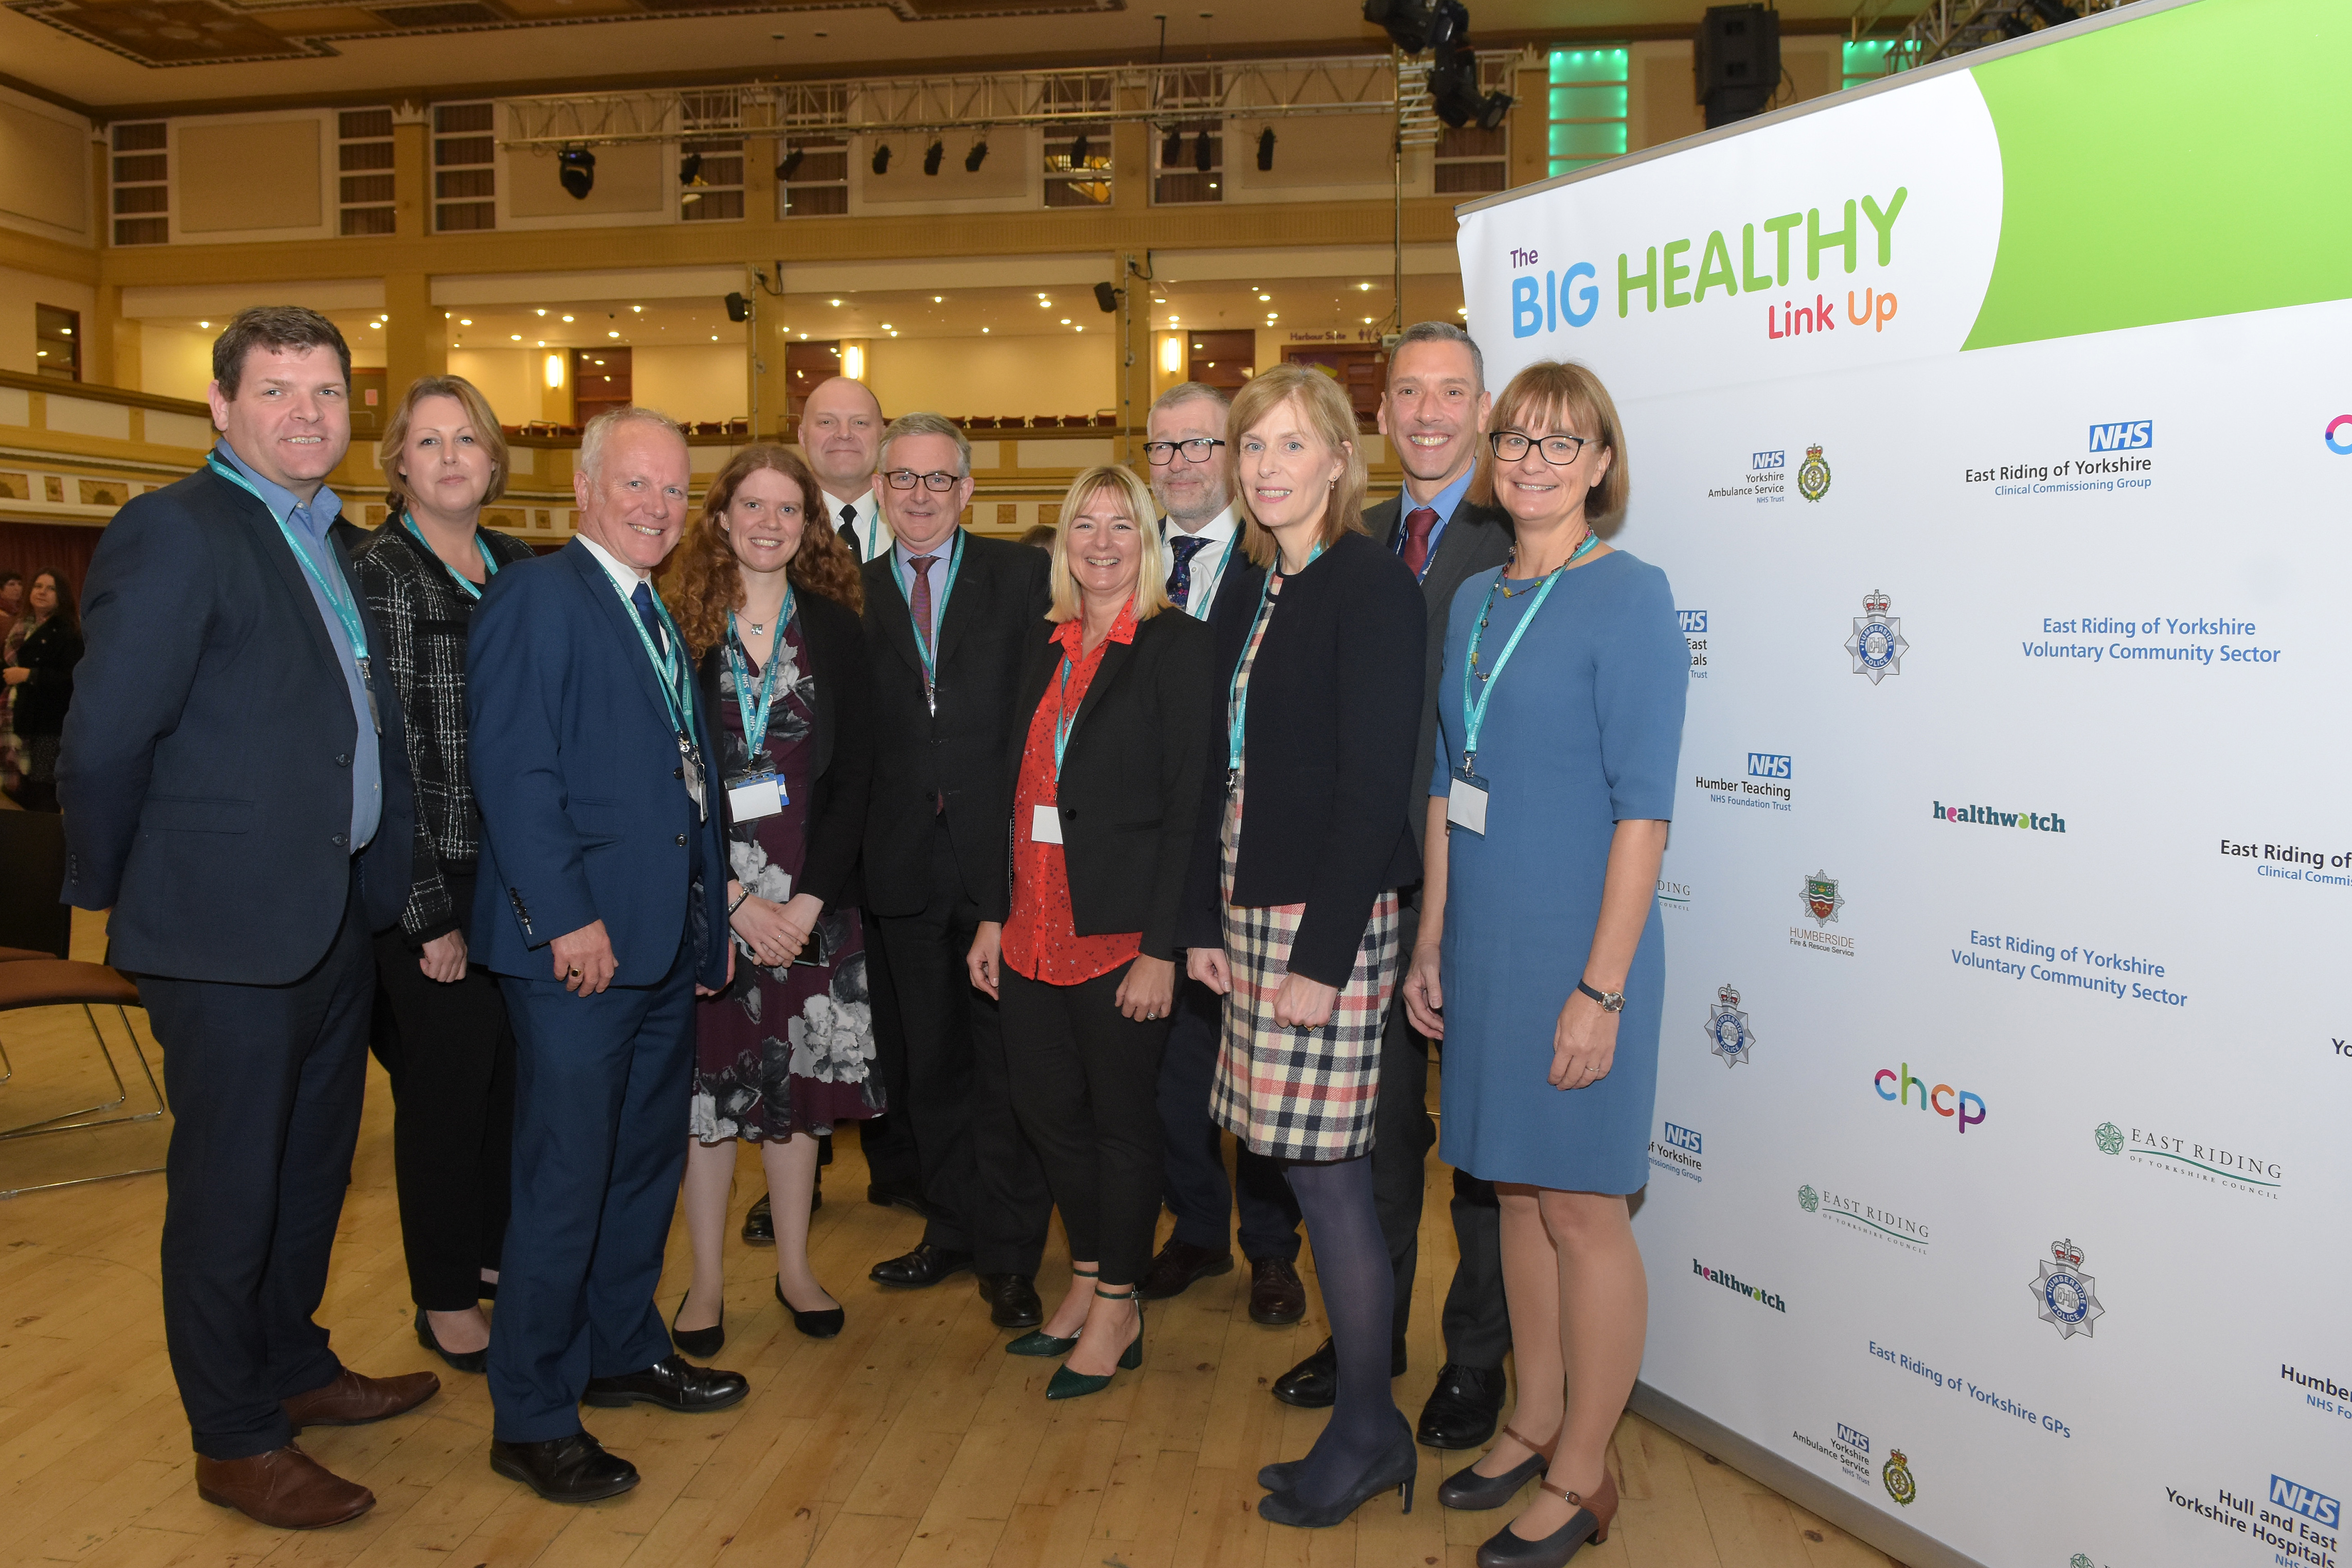 Attendees at The Big Healthy Link Up